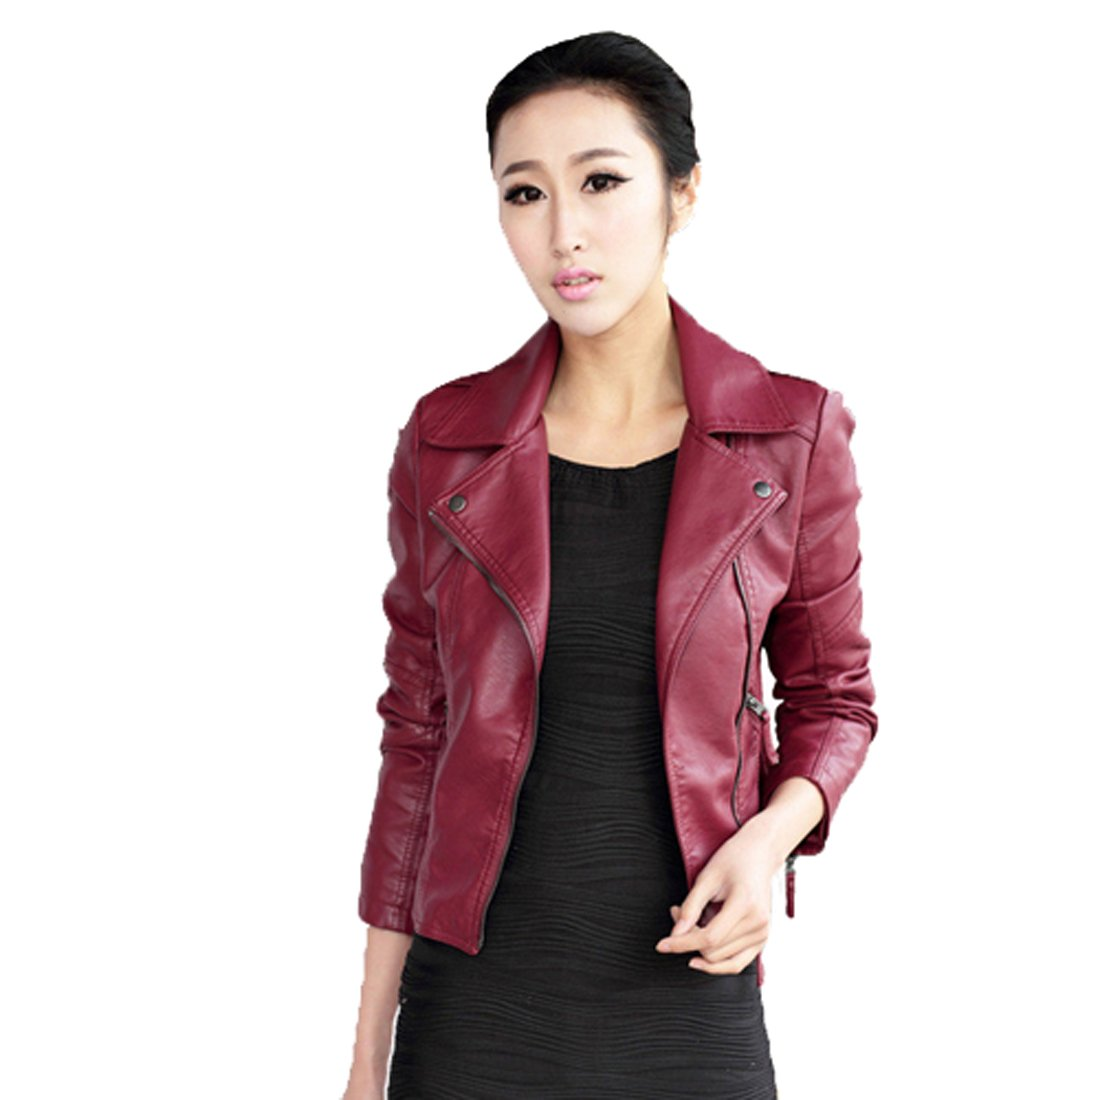 Women's Punk Rock Coat Slim Fit Motorcycle Biker PU Leather Jacket